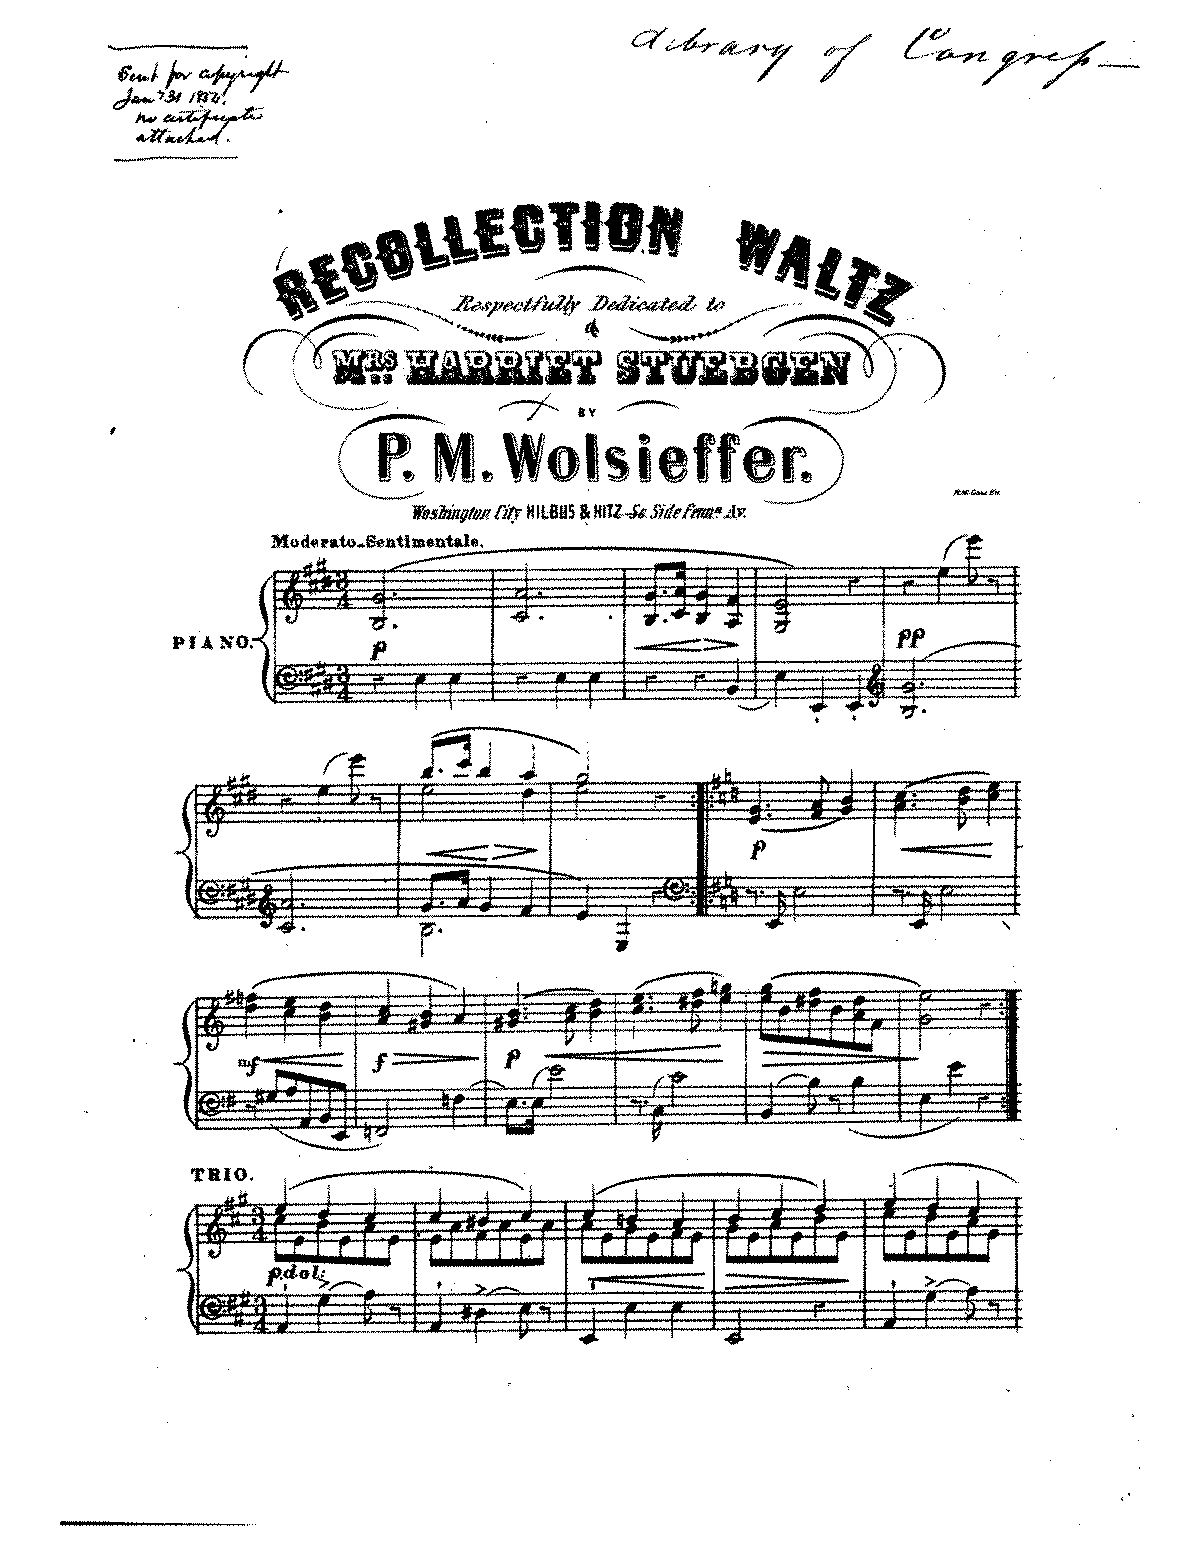 PMLP212853-WolsiefferRecollectionWaltzE.pdf